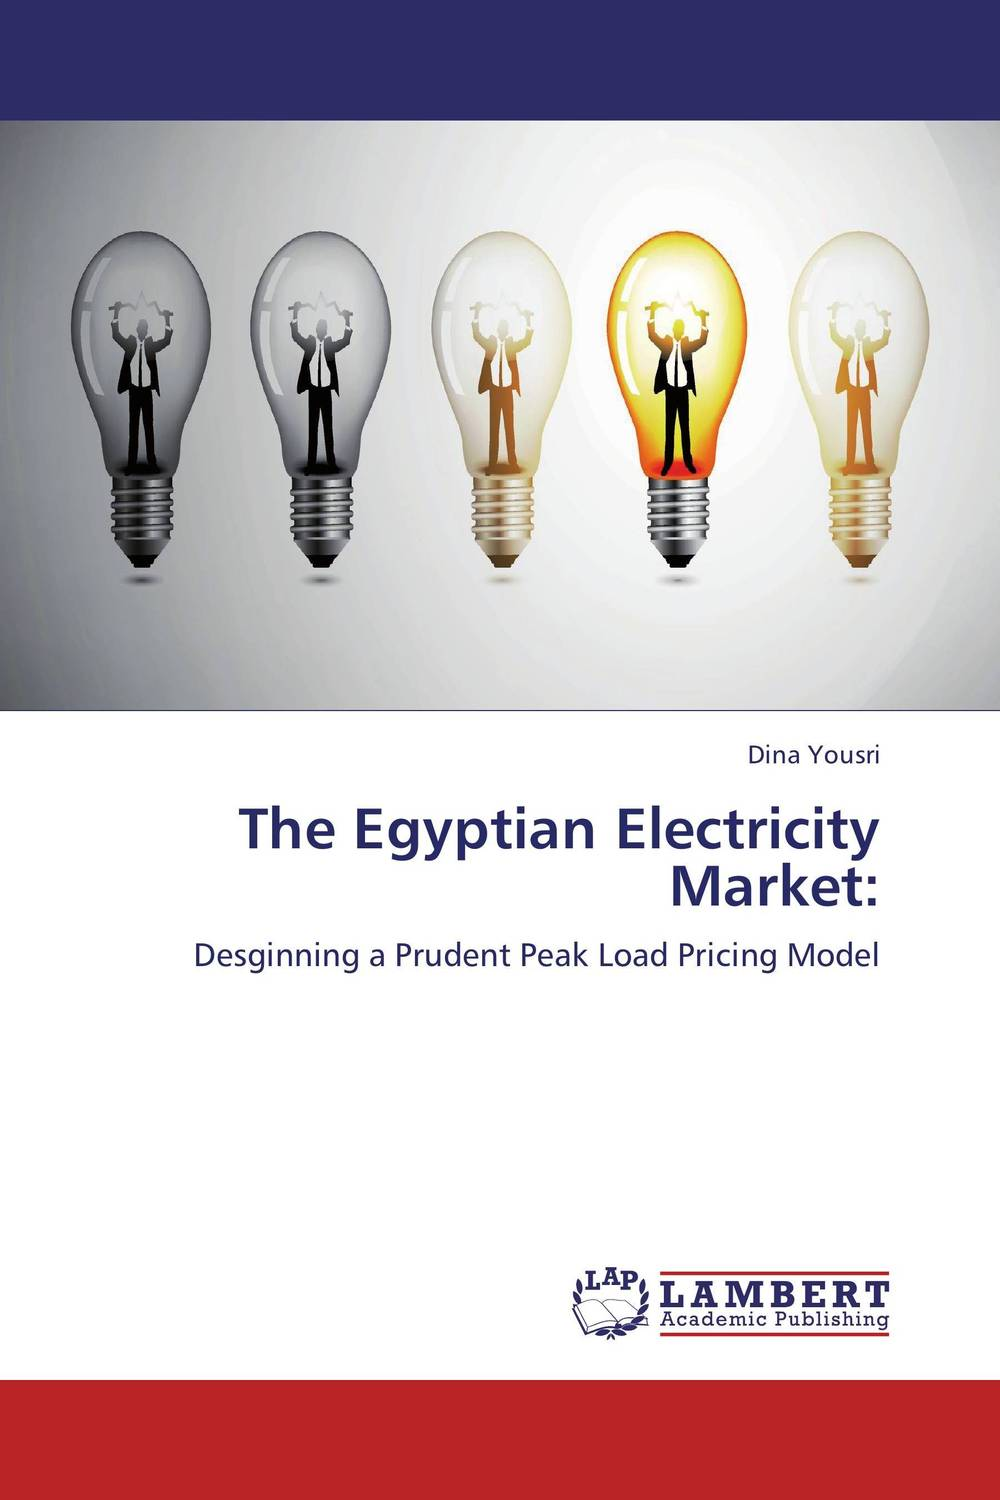 The Egyptian Electricity Market: the valves are self acting i e they operate without the supply of auxiliary energy such as electricity or compressed air